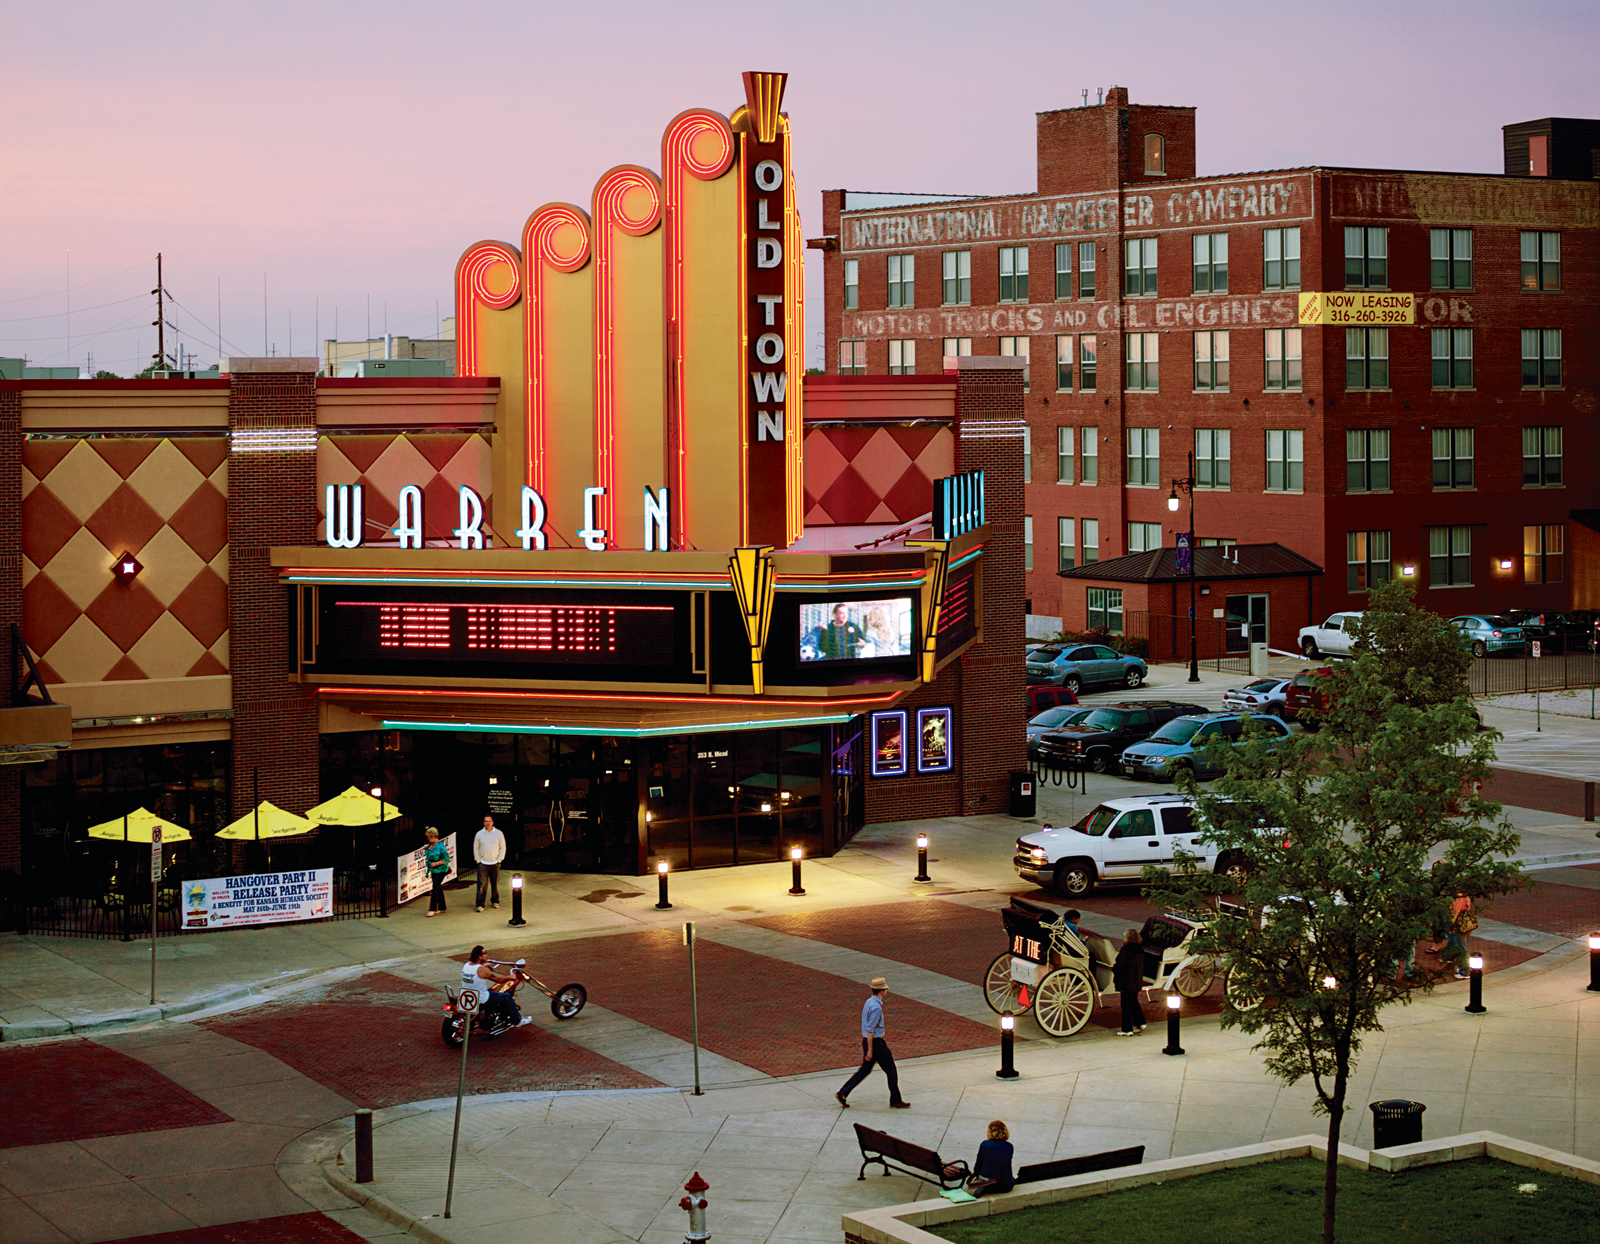 The OldTown Theatre Grill in downtown Wichita, Kansas